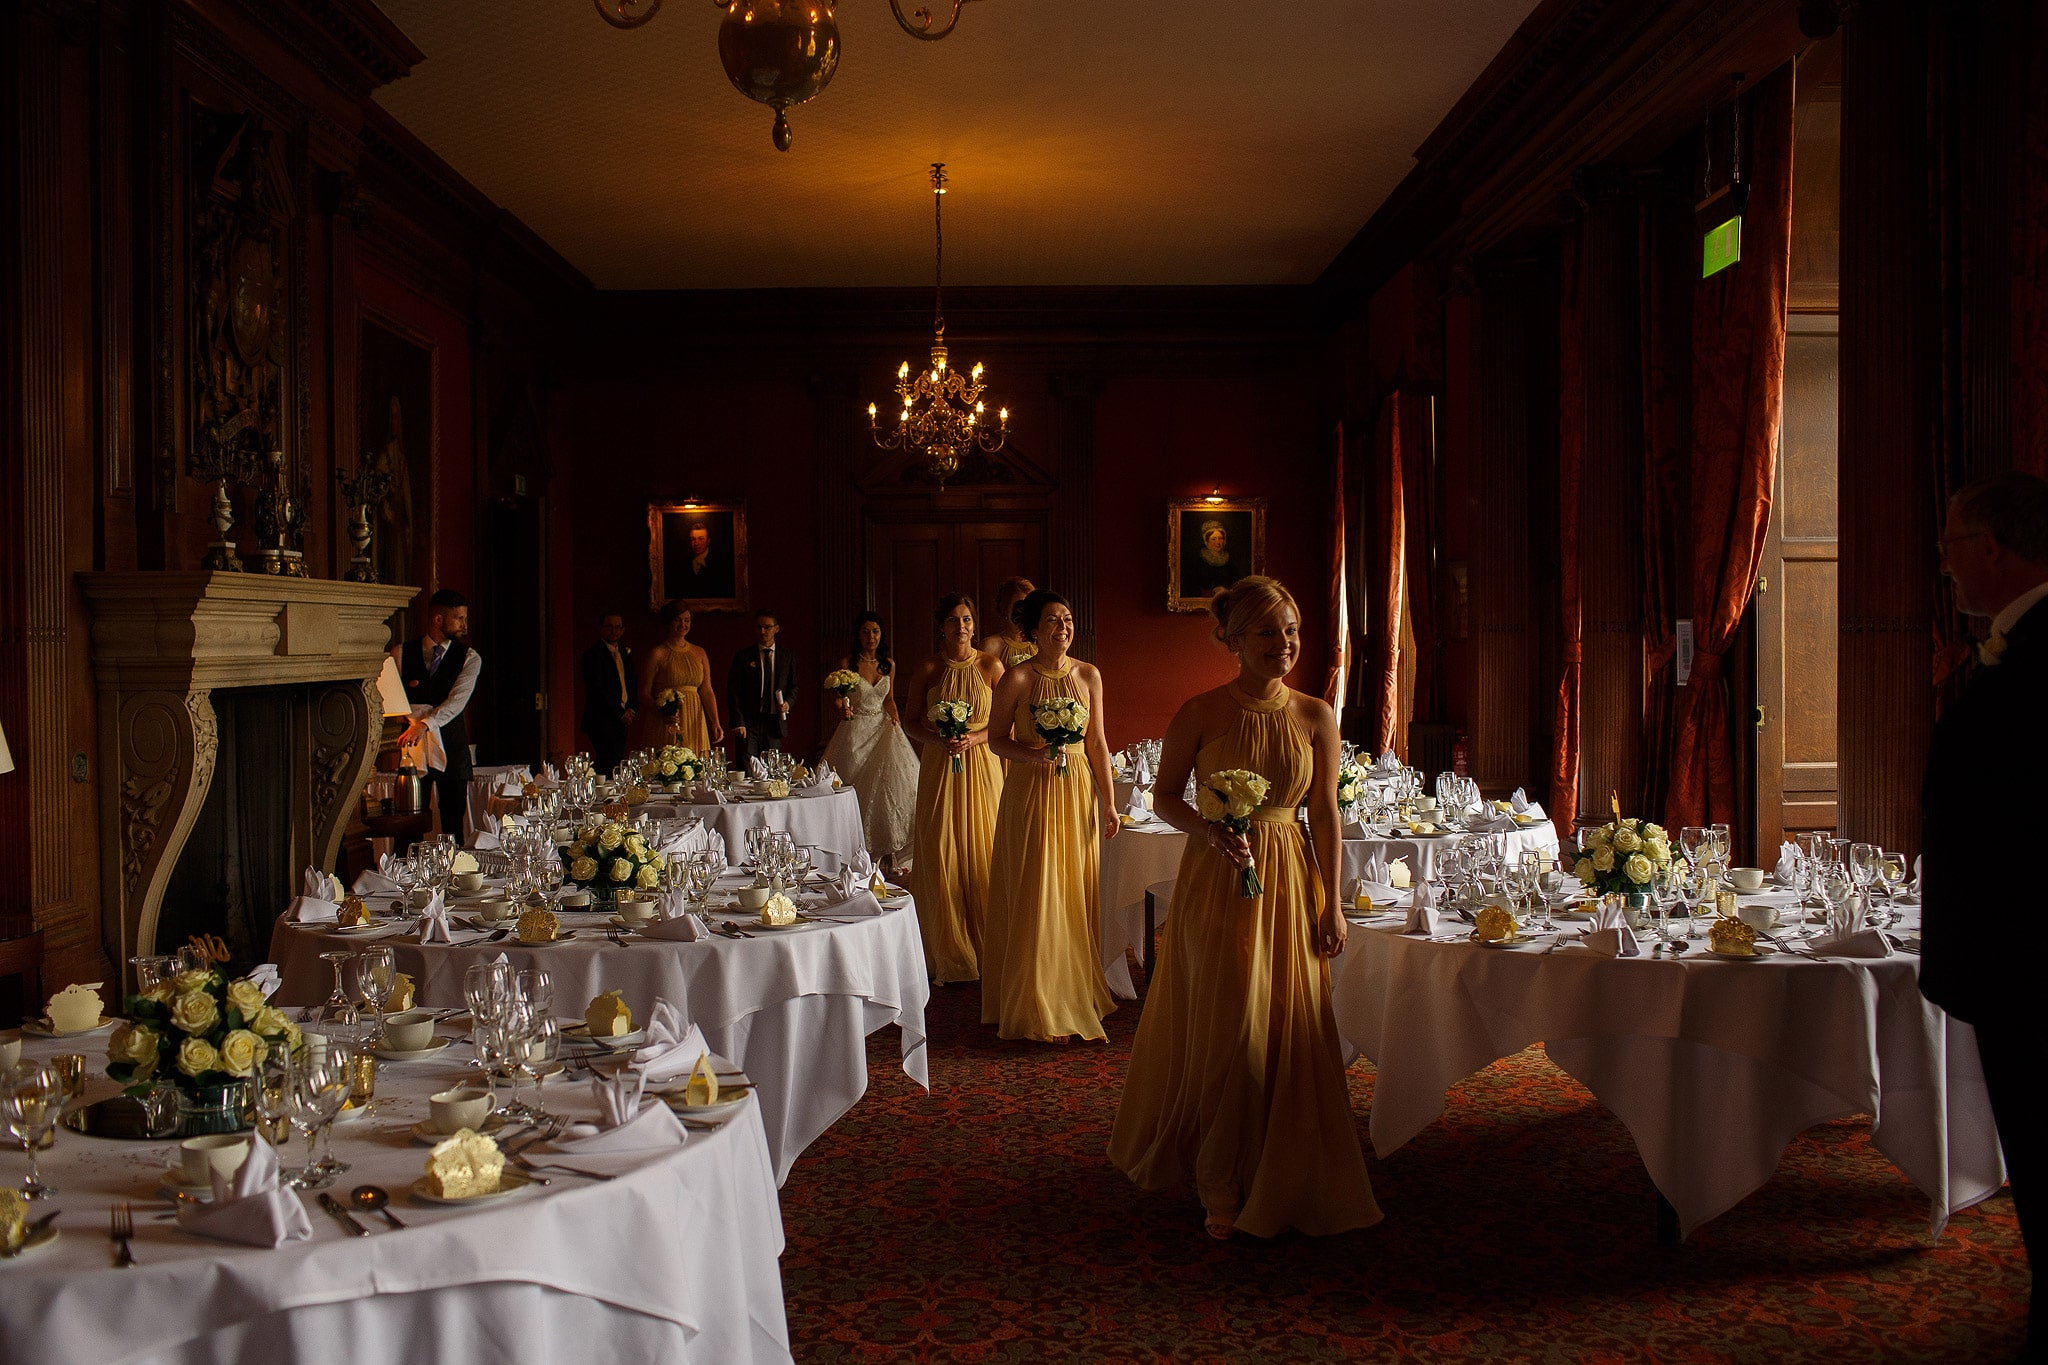 Bridesmaids all wearing gold dresses entering wedding ceremony at Crathorne Hall